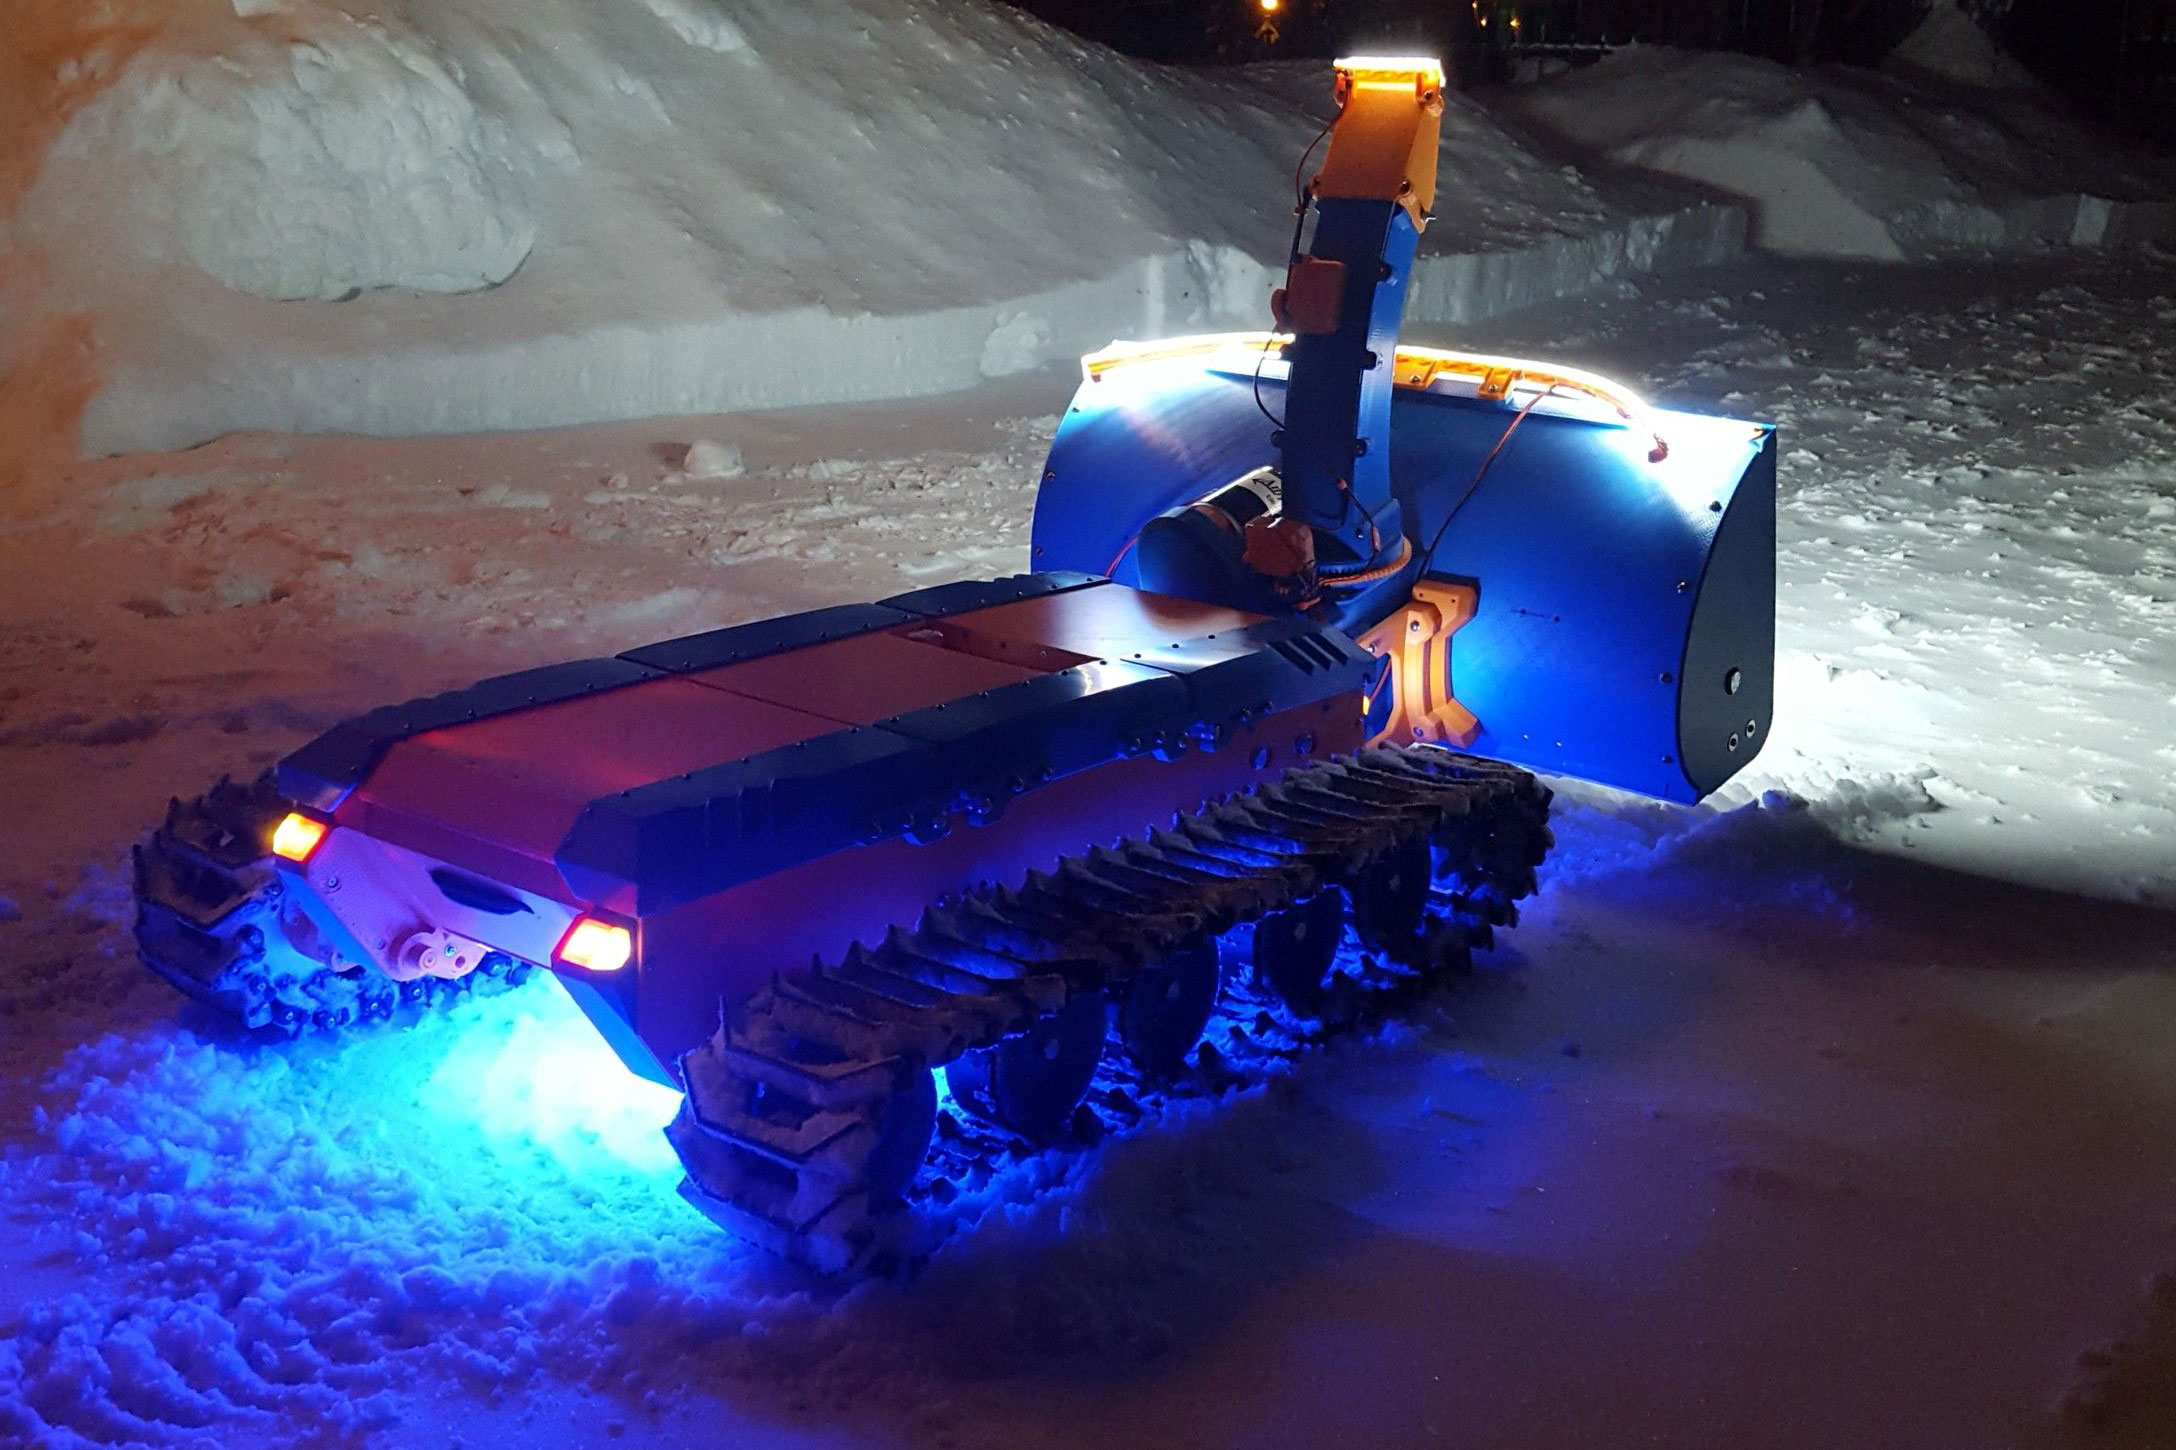 2XSpyker Kat remote-controlled snowblower at night LED lights